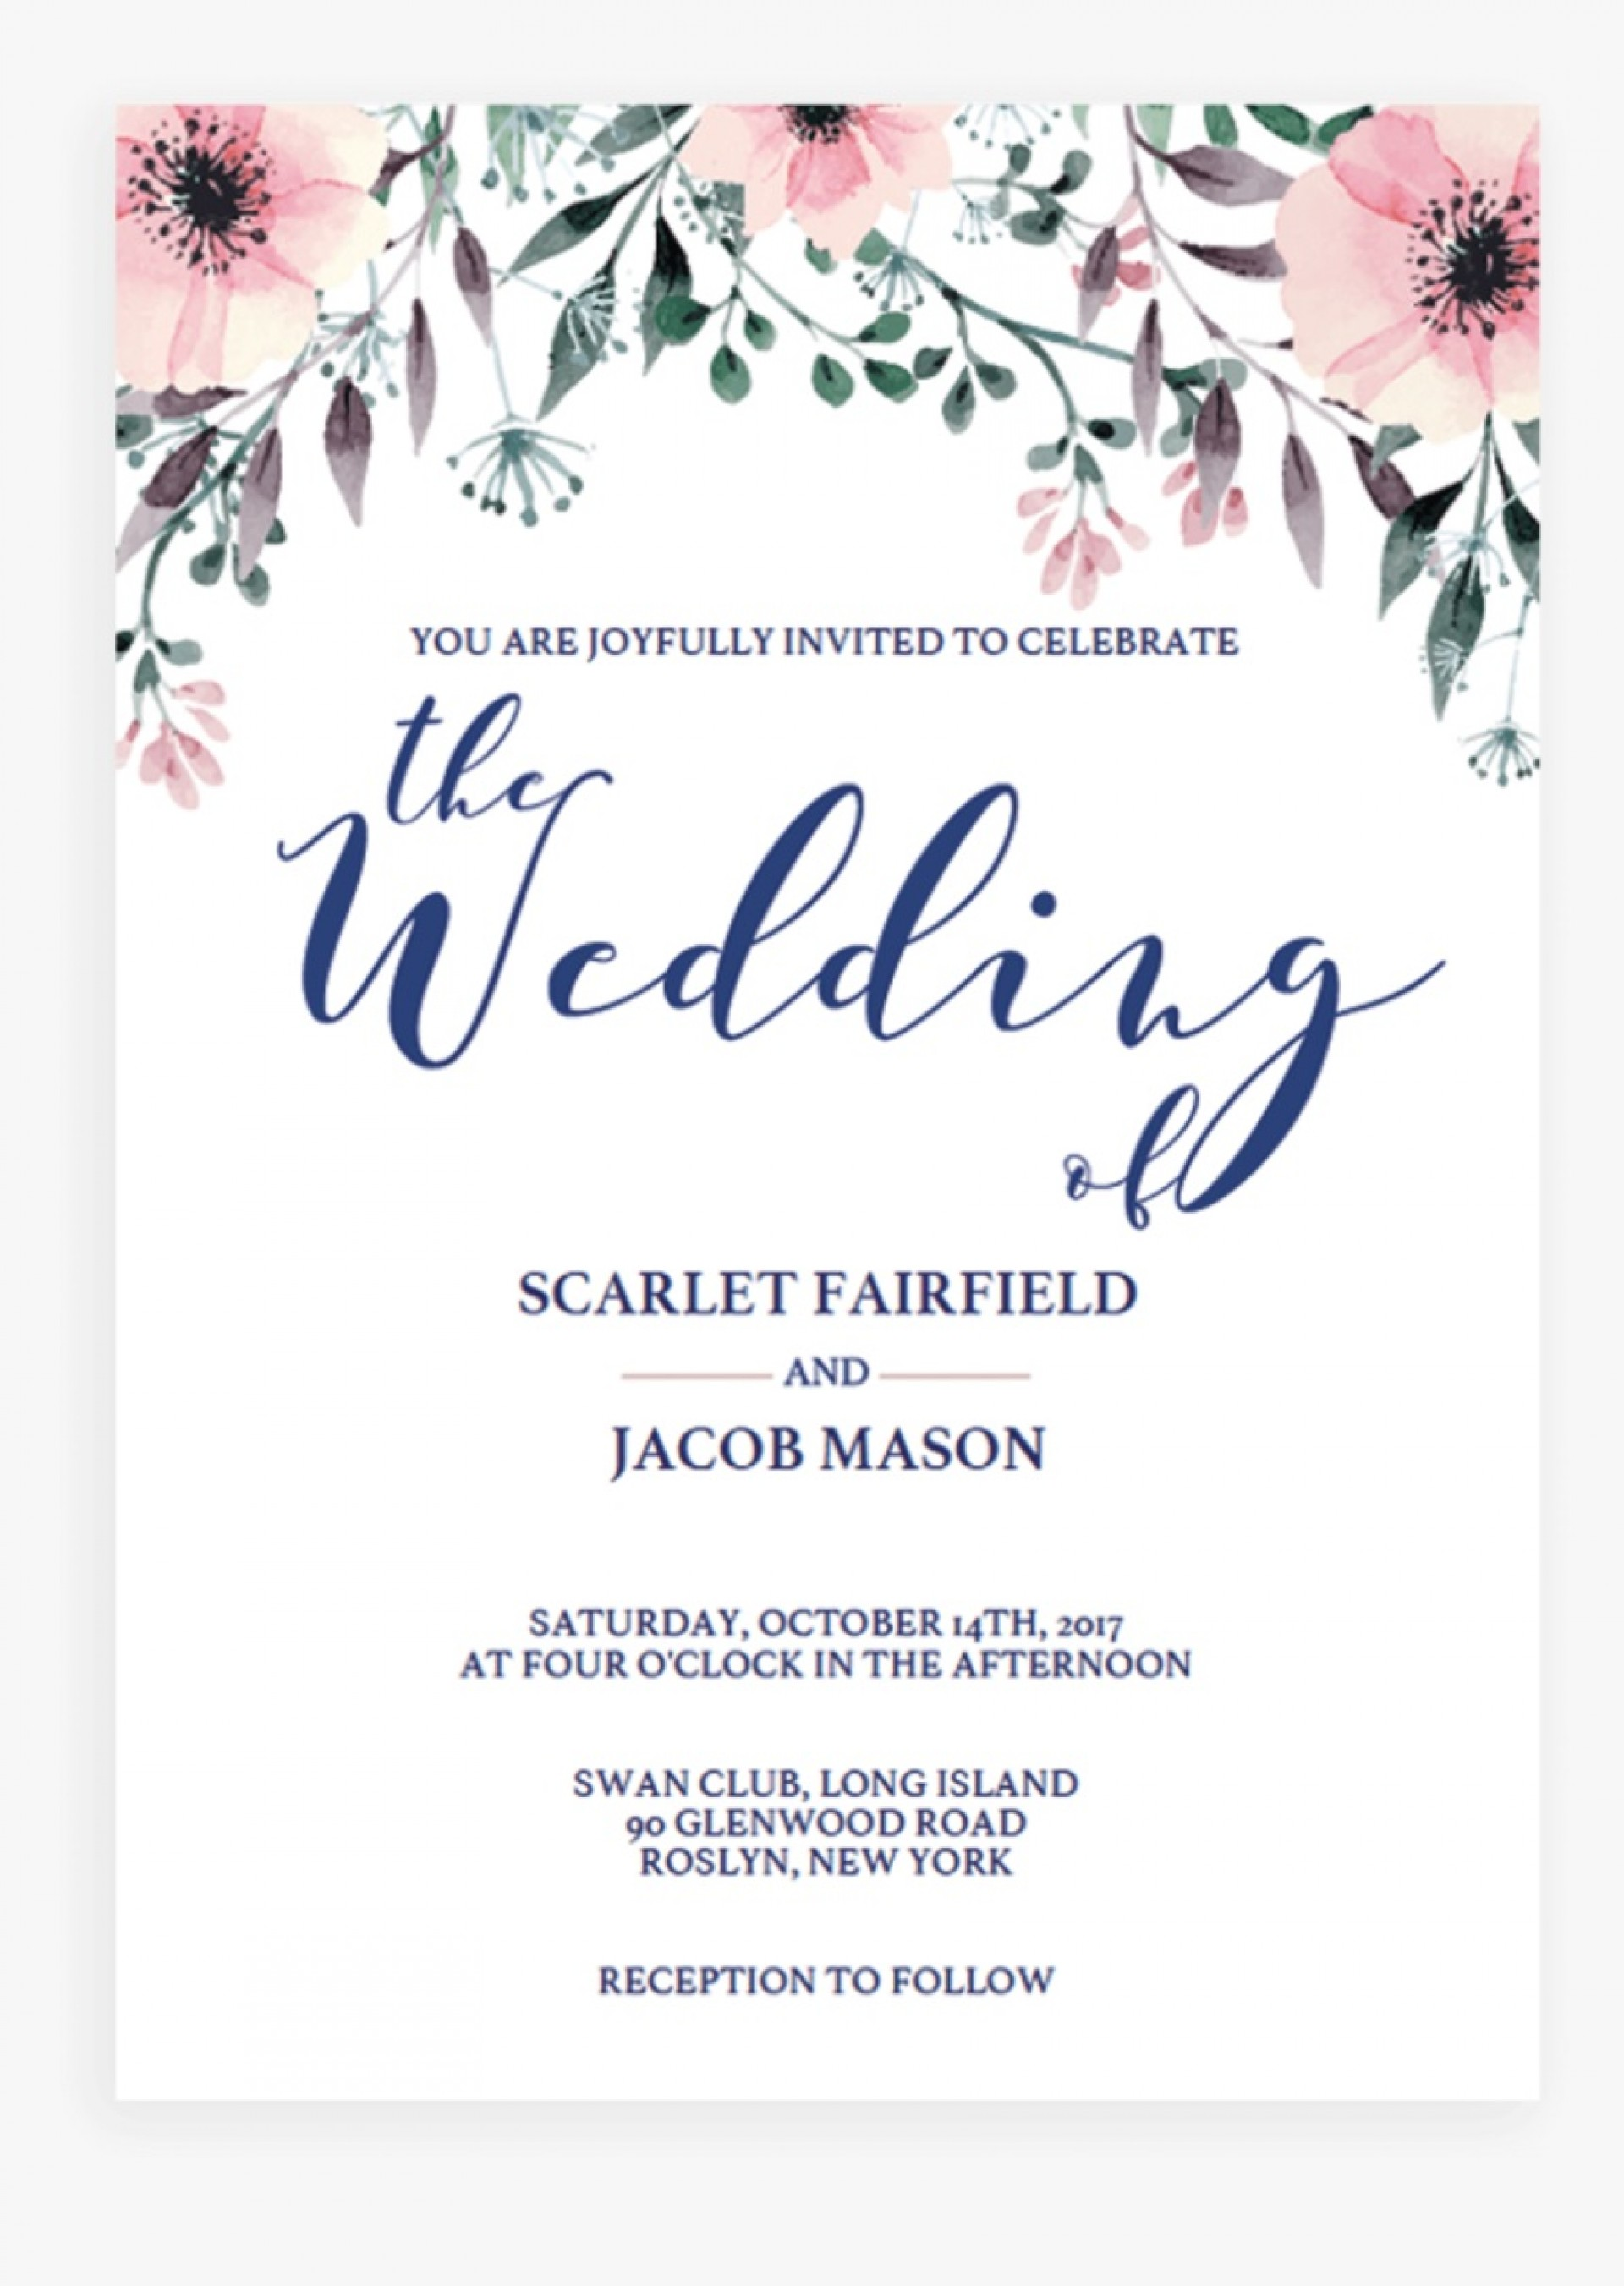 004 Awful Wedding Invitation Template Free Sample  Card Psd For Word Muslim 20071920